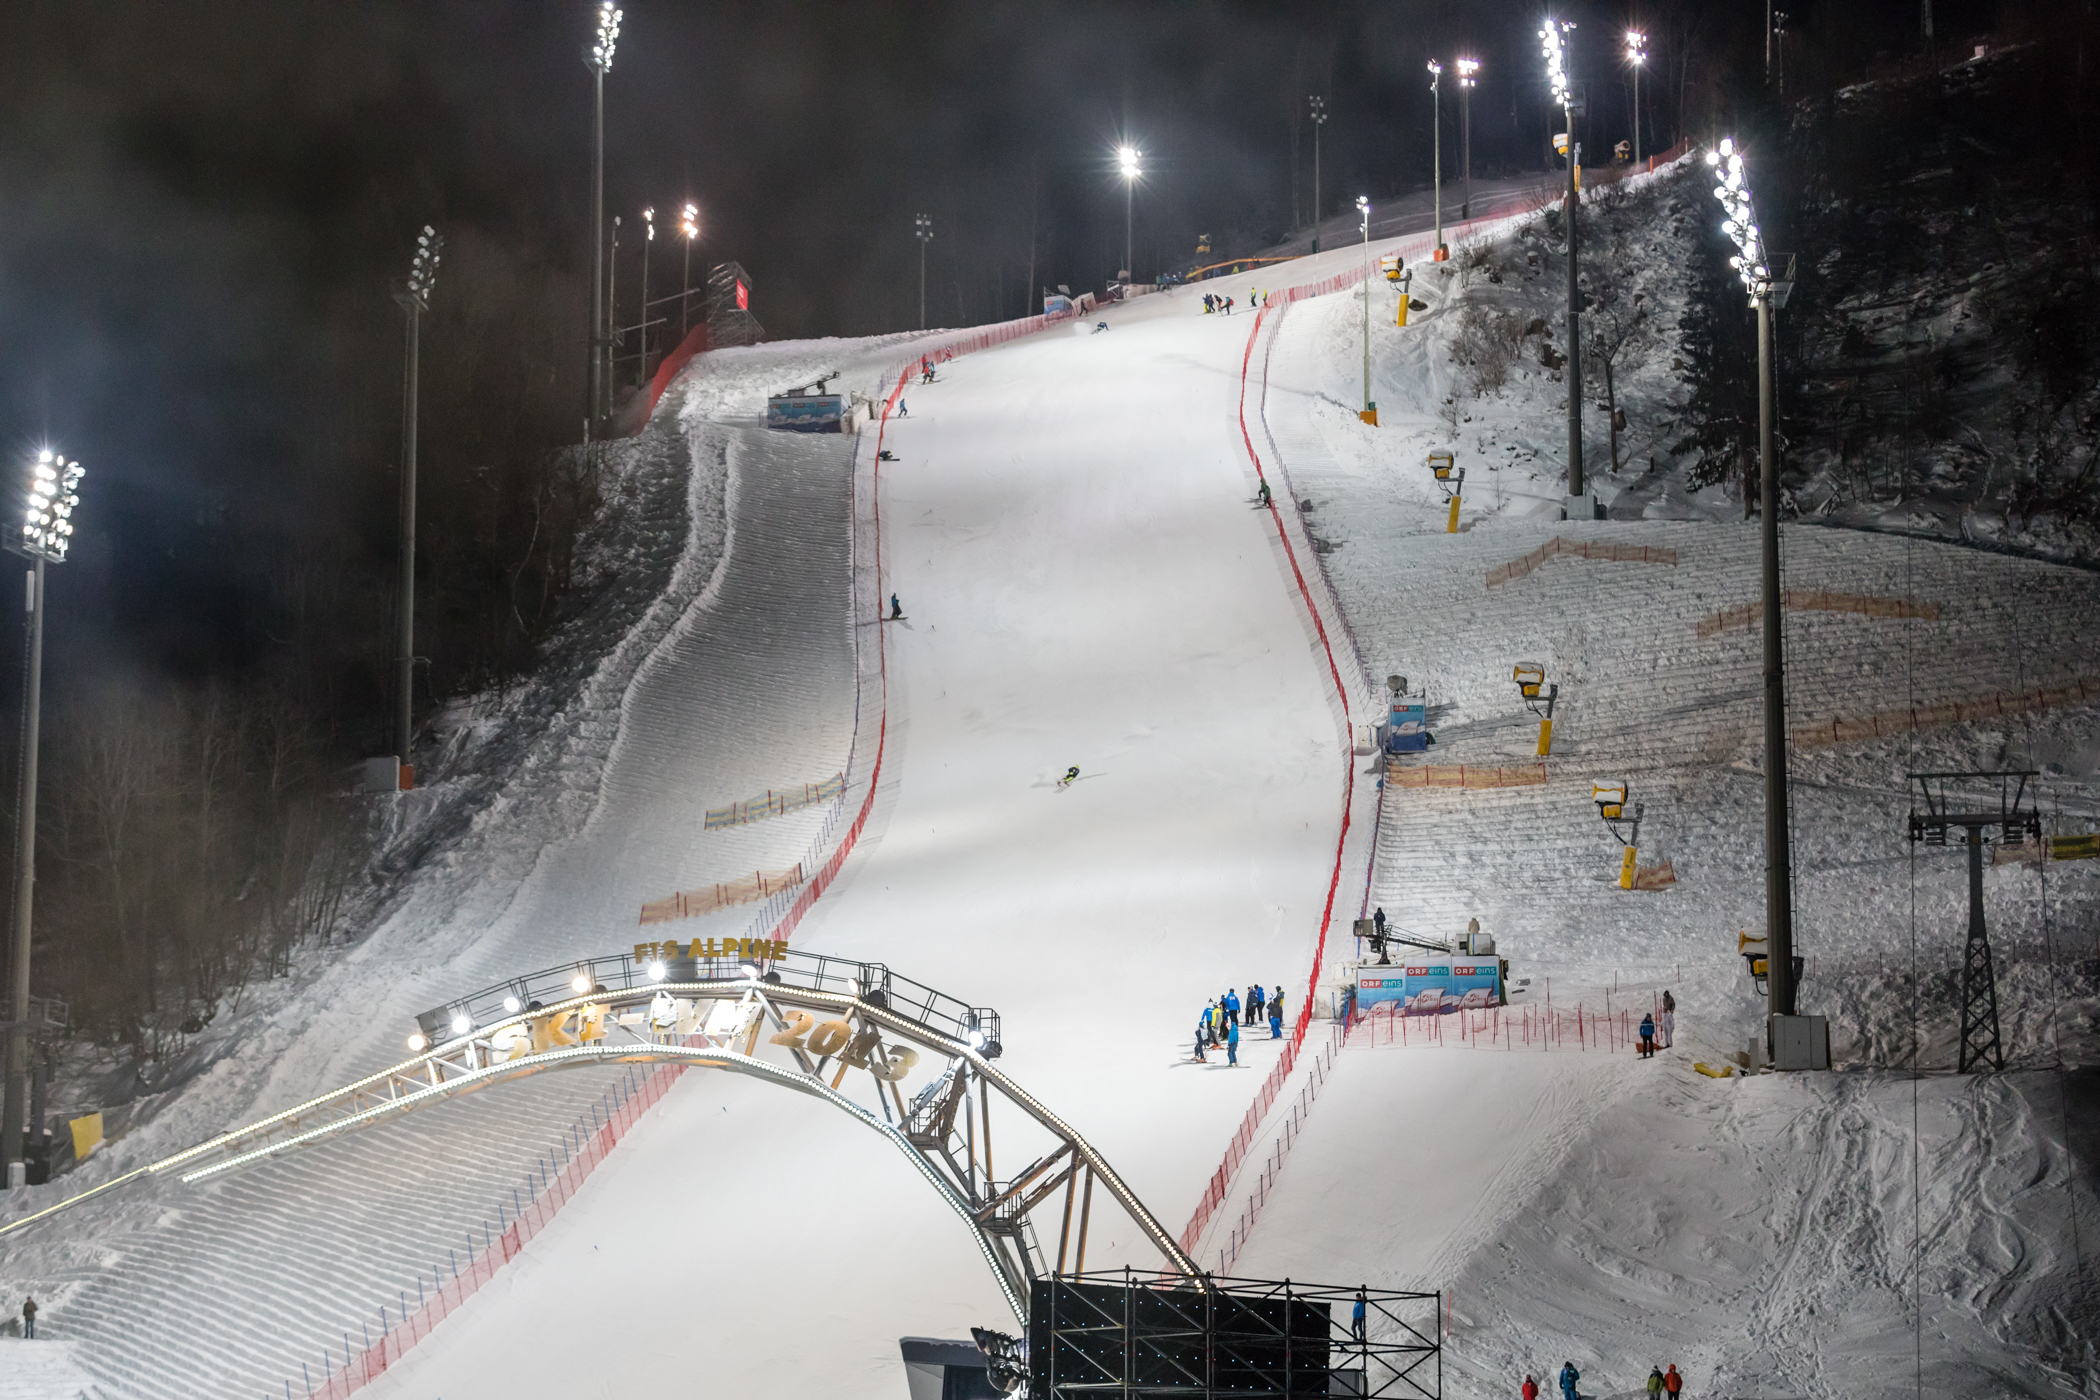 World Cup i Schladming